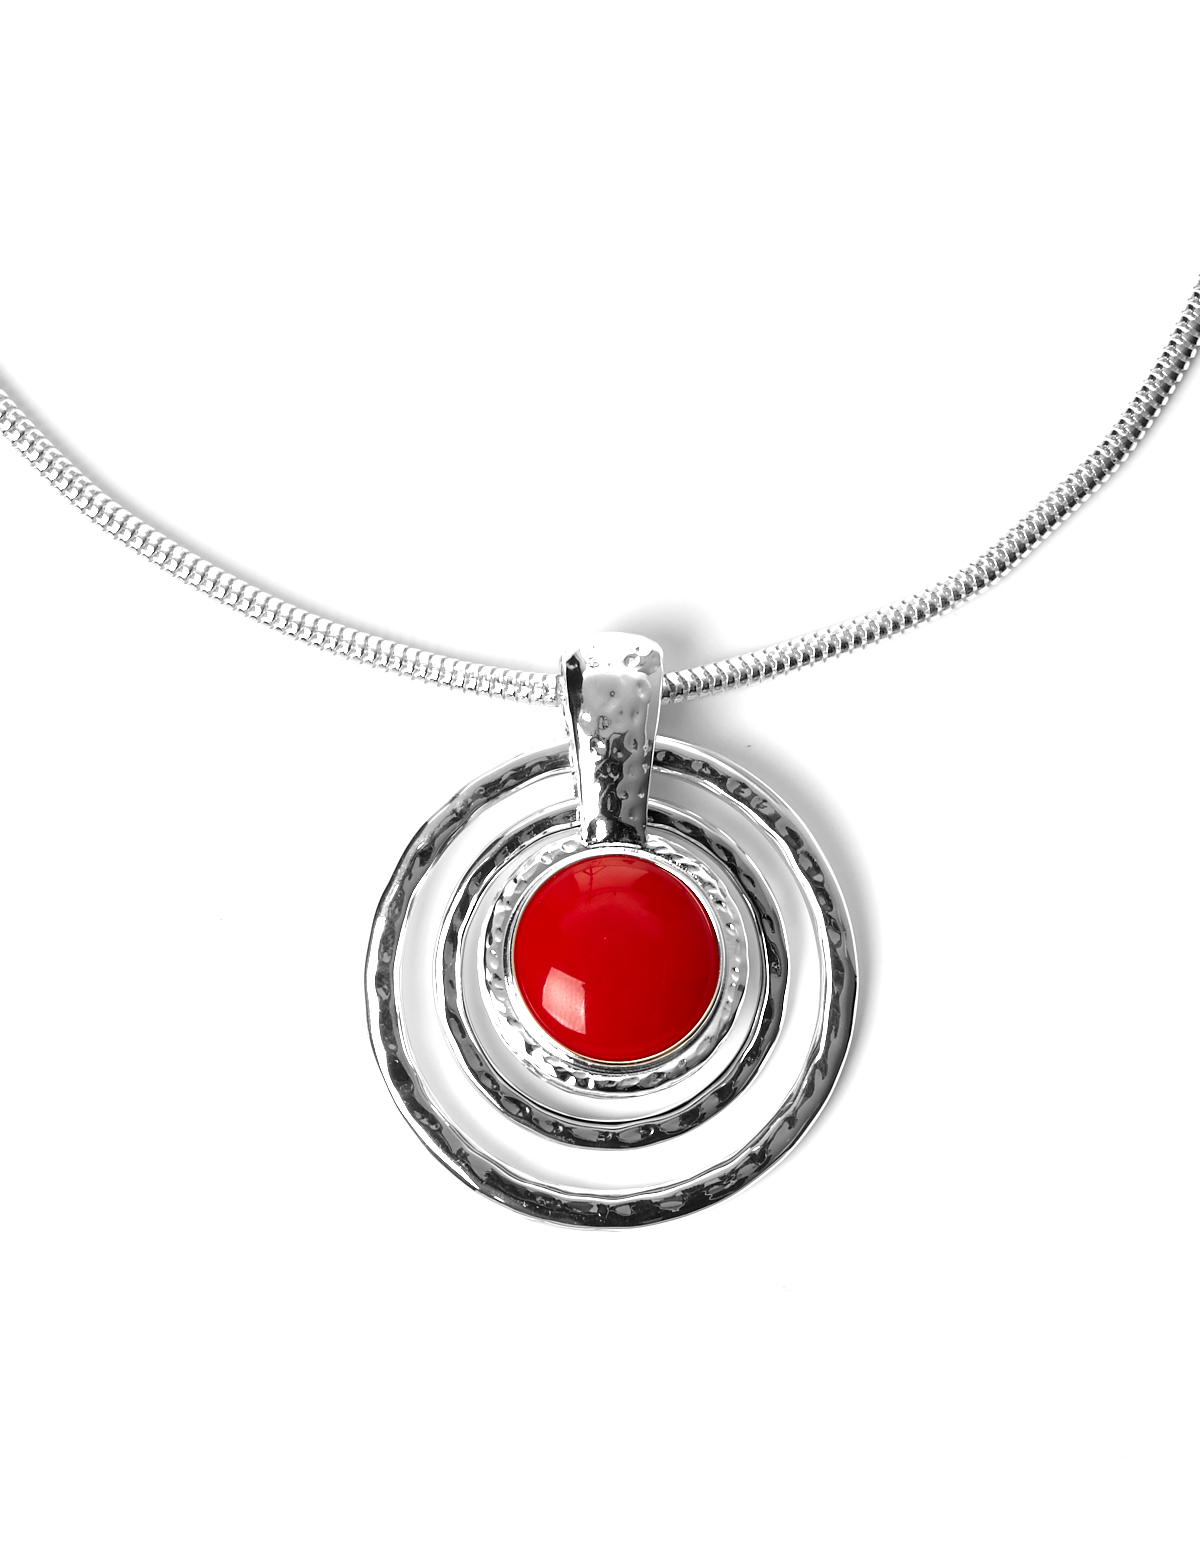 Red reversible pendant necklace cleo red pendant necklace redblack hi res aloadofball Gallery